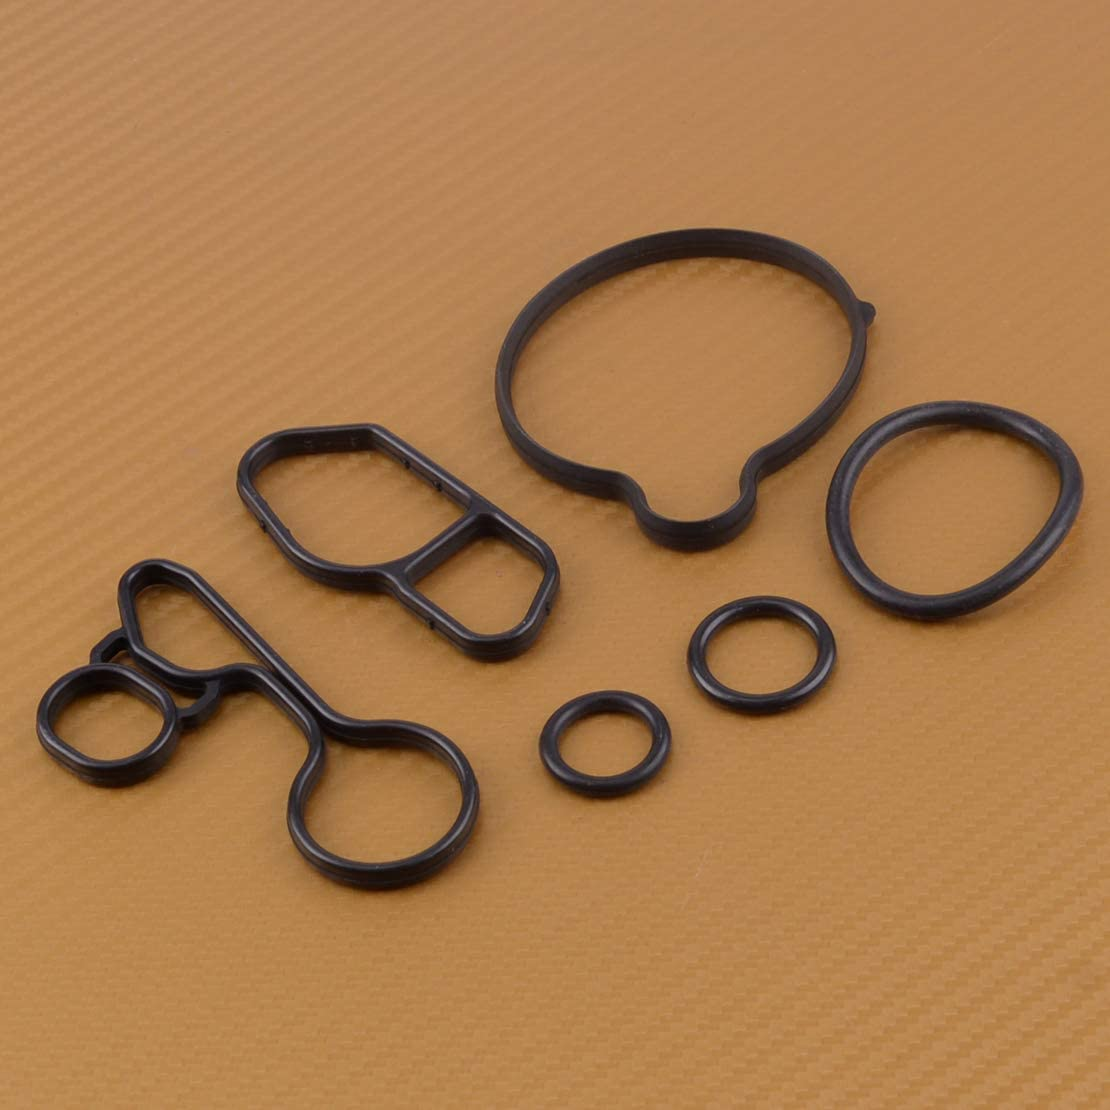 KIMISS Qiilu Engine Oil Filter Housing Seal Gasket Oil Cooler Seal Replacement 11427508971 11427508970